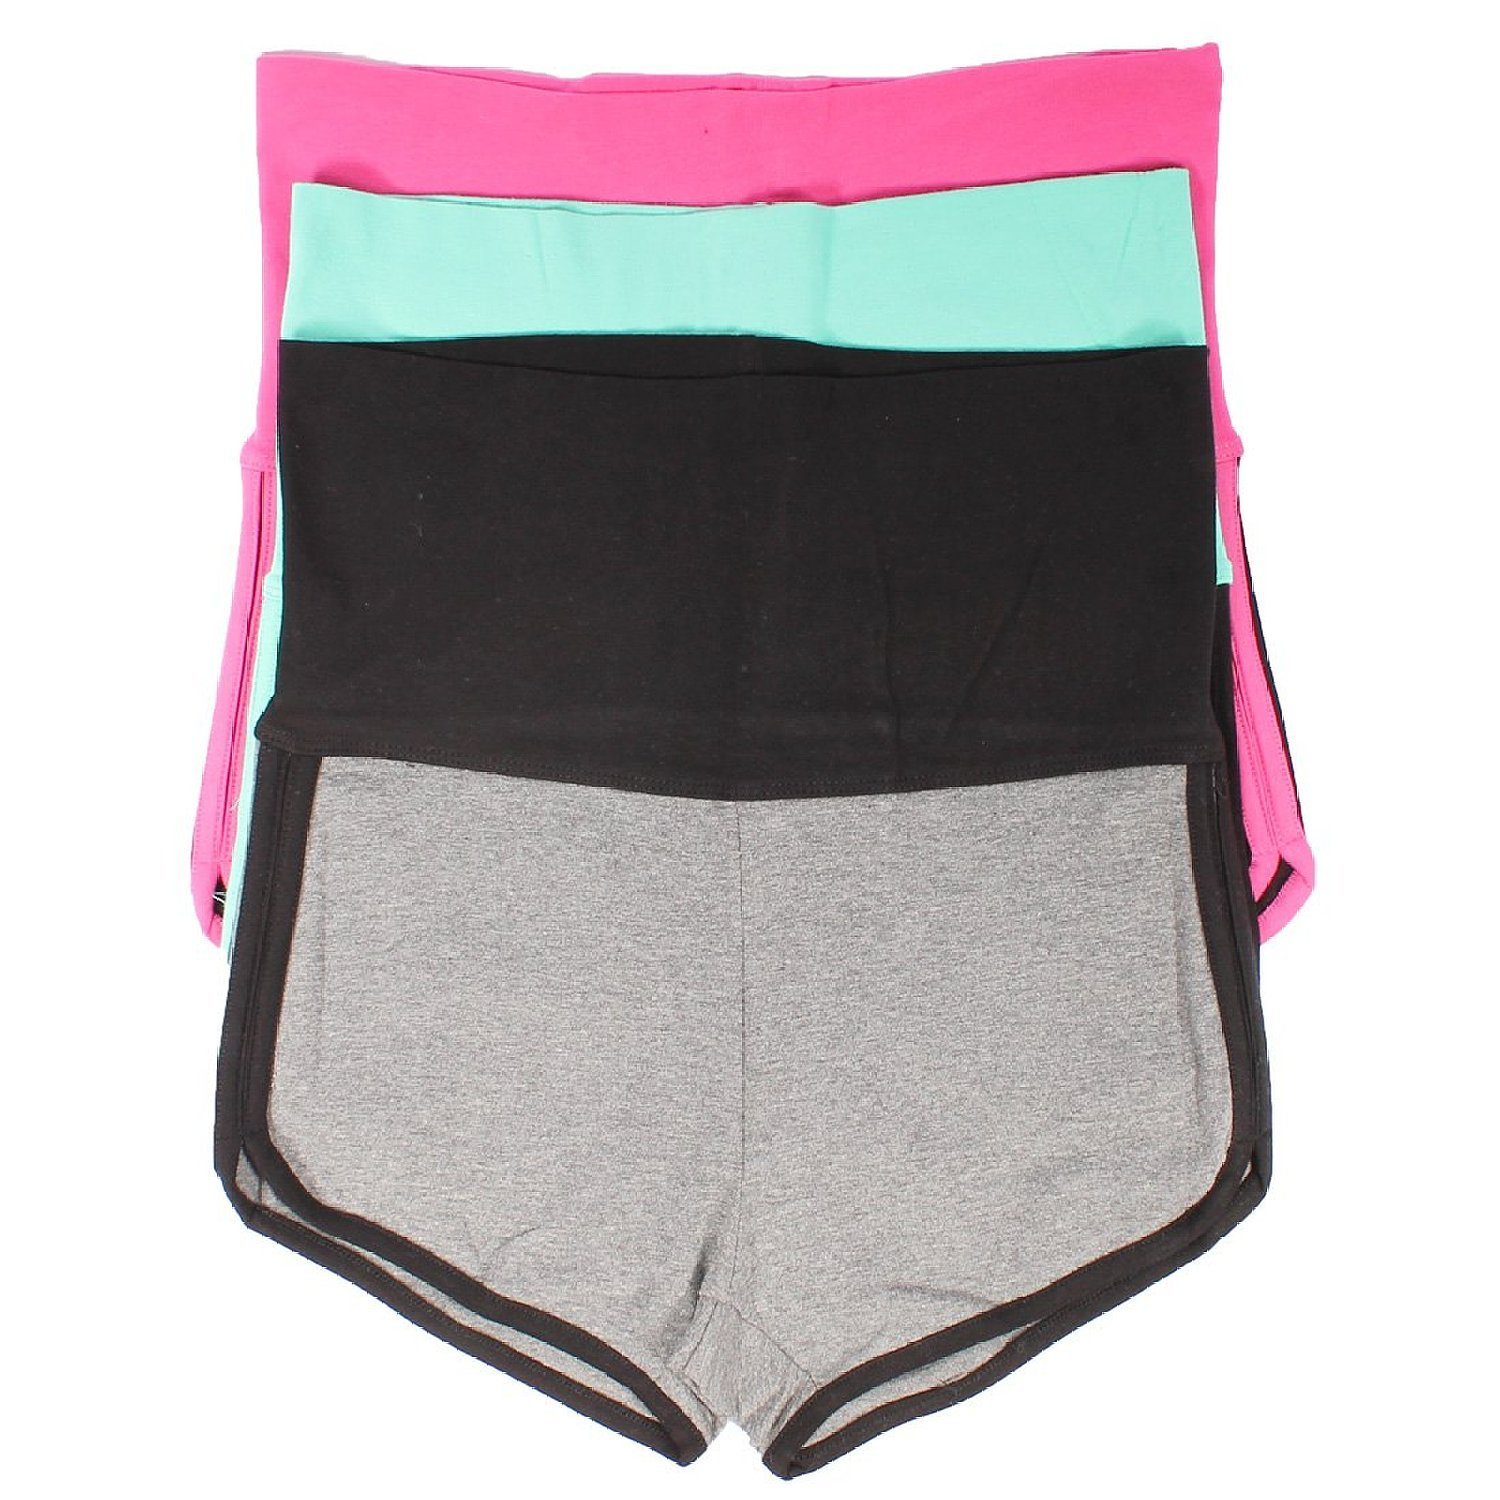 Mopas 3 Pack Yoga Two Tone Dolphin Shorts (Small), Small, gray, pink, mint